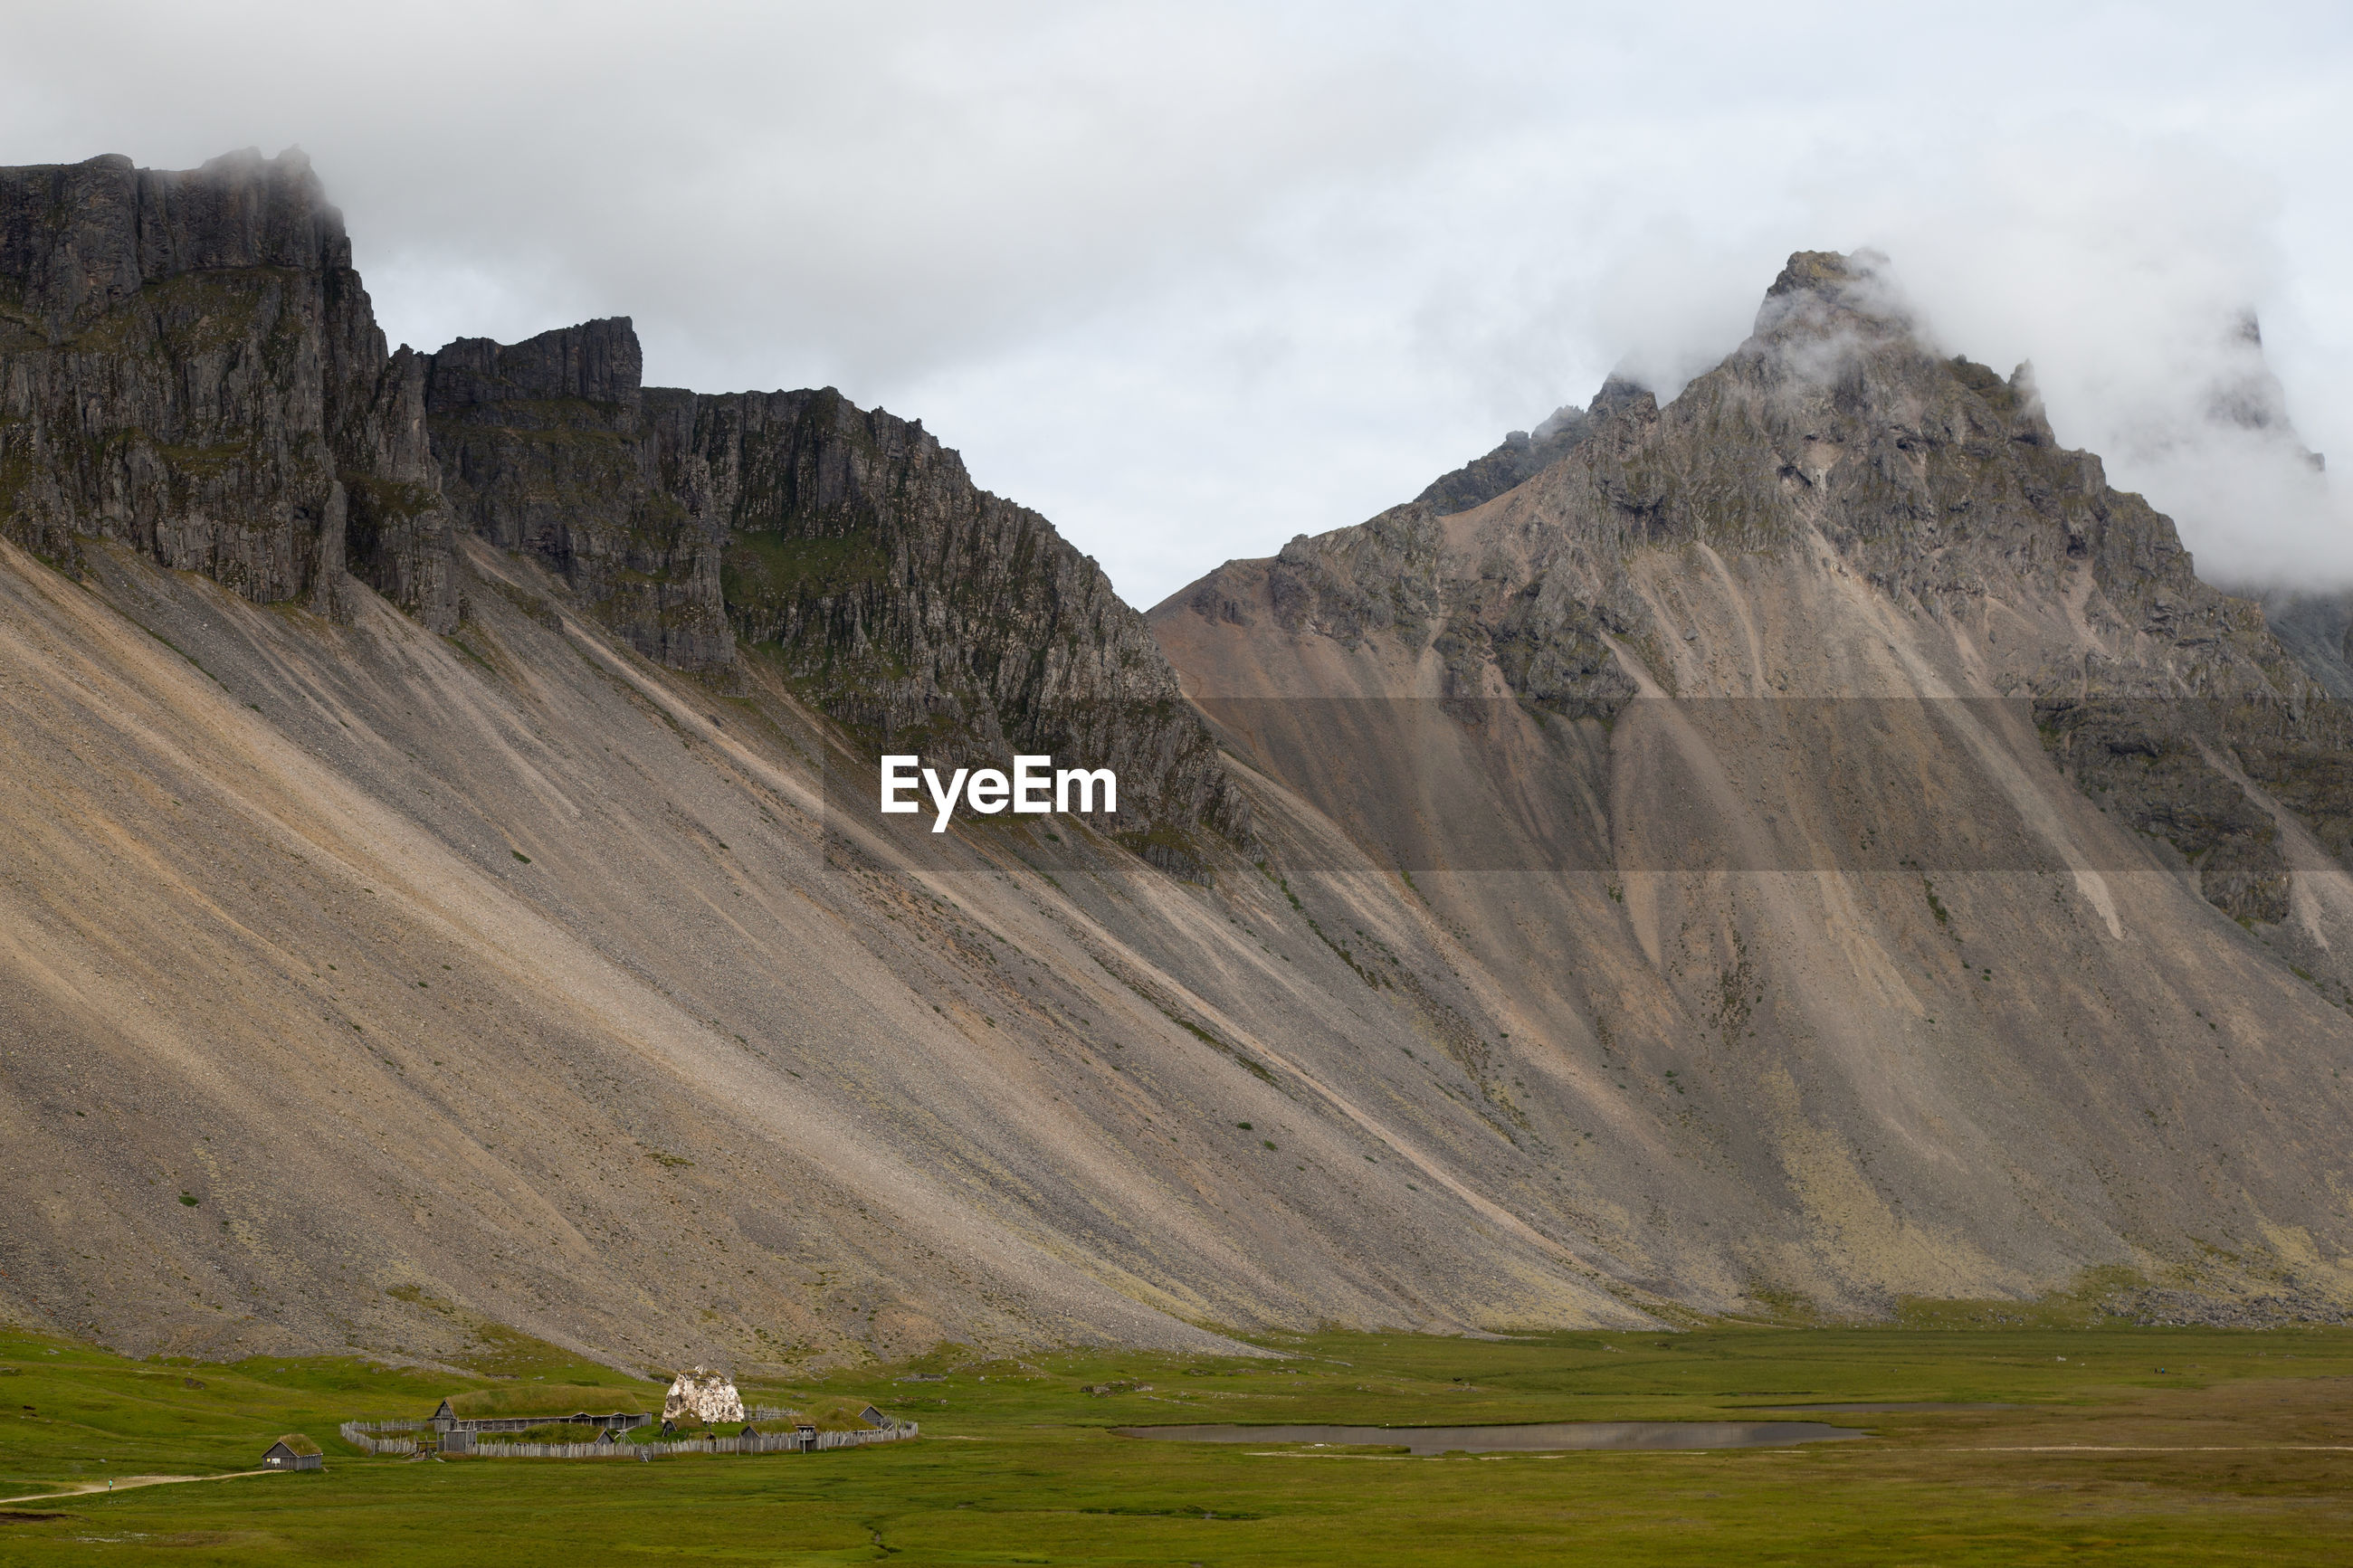 SCENIC VIEW OF MOUNTAIN RANGE AGAINST CLOUDY SKY